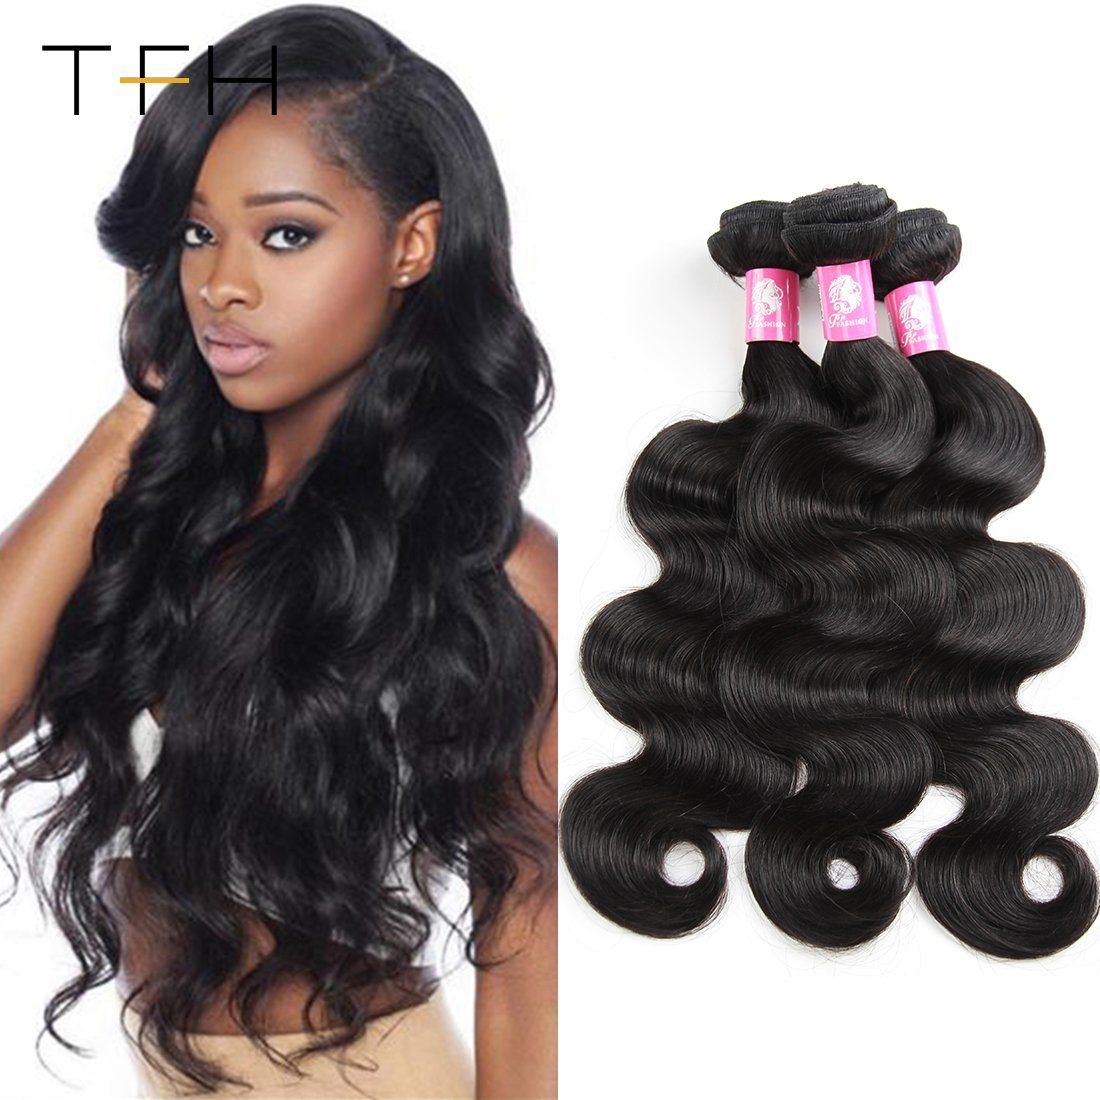 Brazilian Human Hair Weave Bundles Deal Ocean Wave 3 Bundles Human Hair Estentions Double Weft Natural Color Remy Hair Weaving Hair Weaves